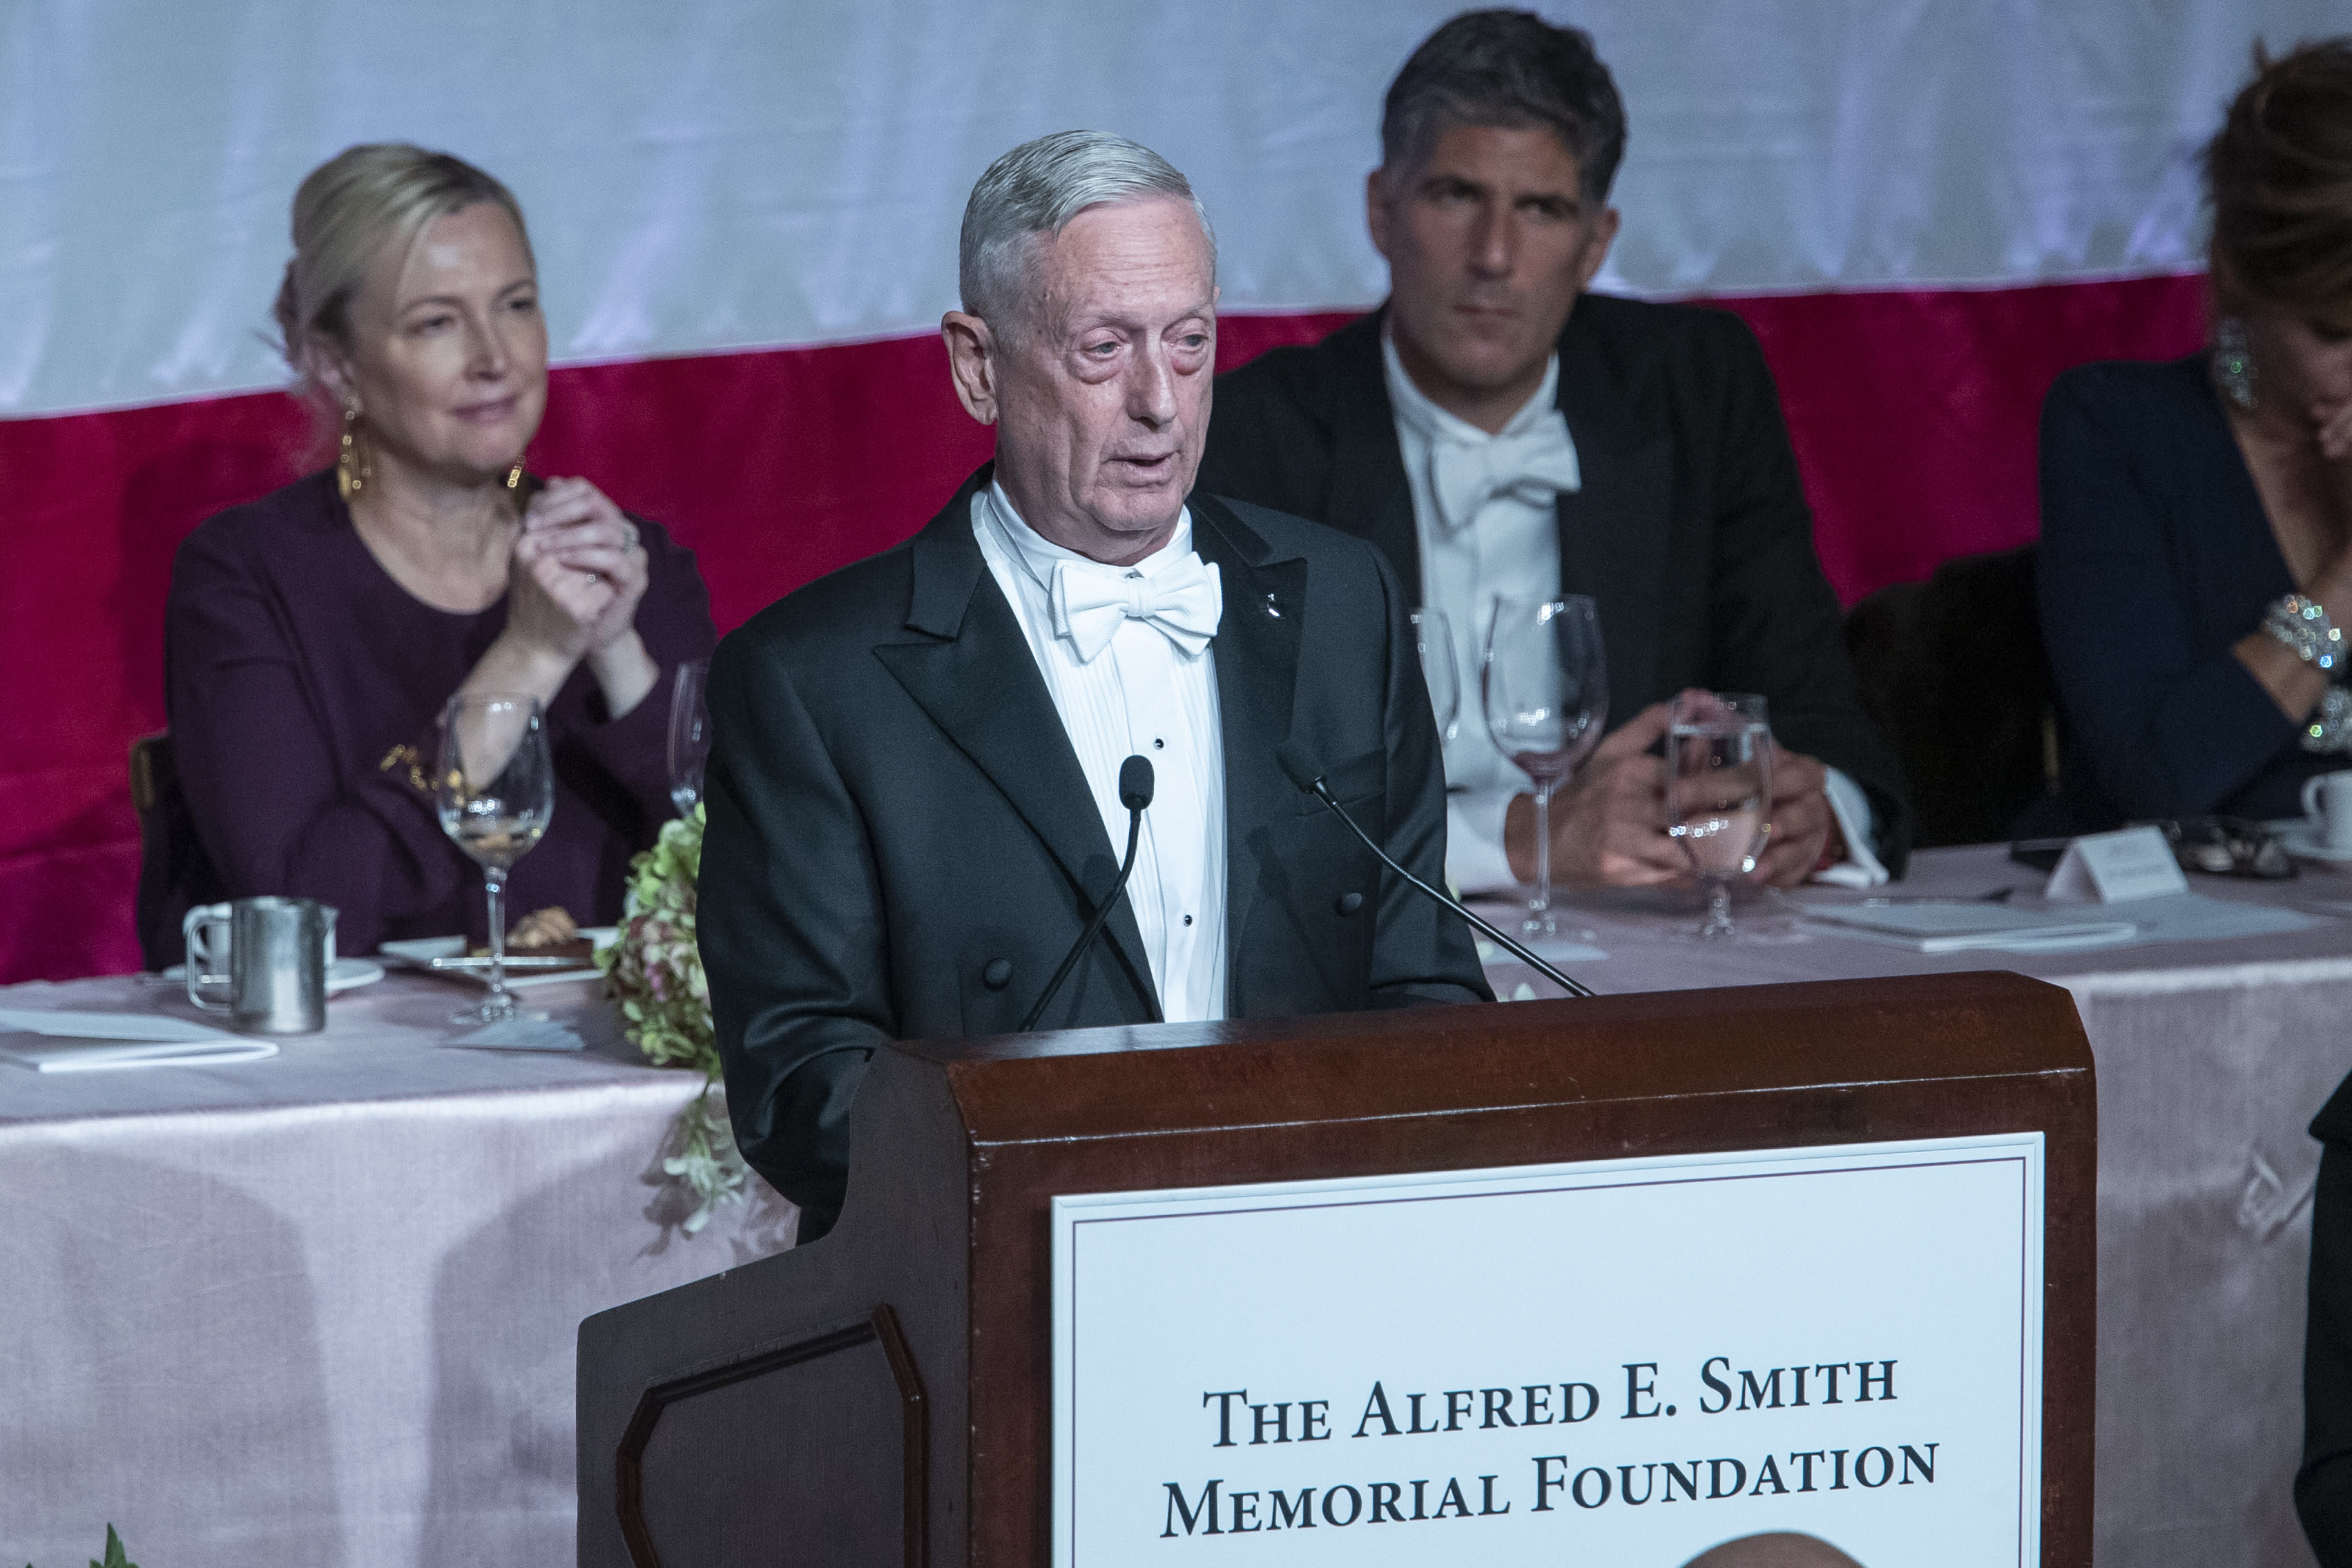 Jim Mattis Roasts President Trump, Calls Himself the 'Meryl Streep of Generals'